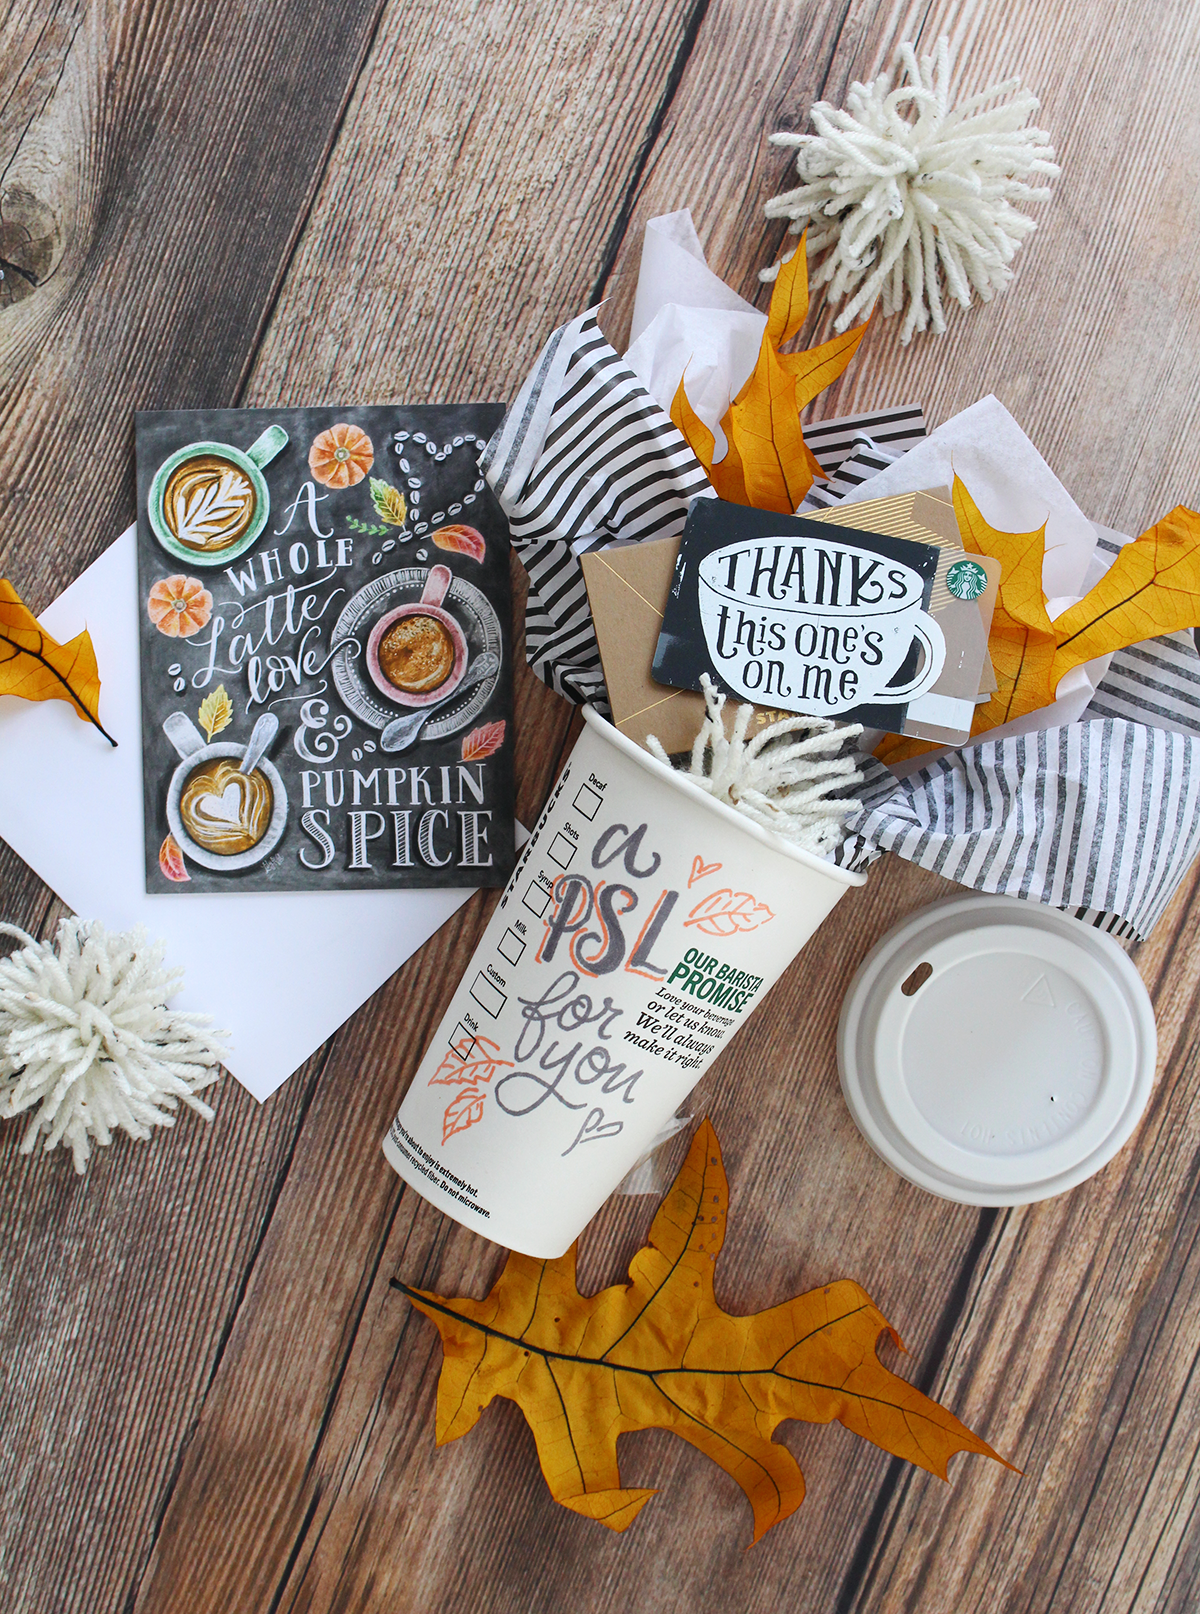 An easy fall gift idea for spreading the pumpkin spice love: hand letter on a starbucks cup, then fill it with a $5 Starbucks gift card and a Lily & Val Pumpkin spice latte card!